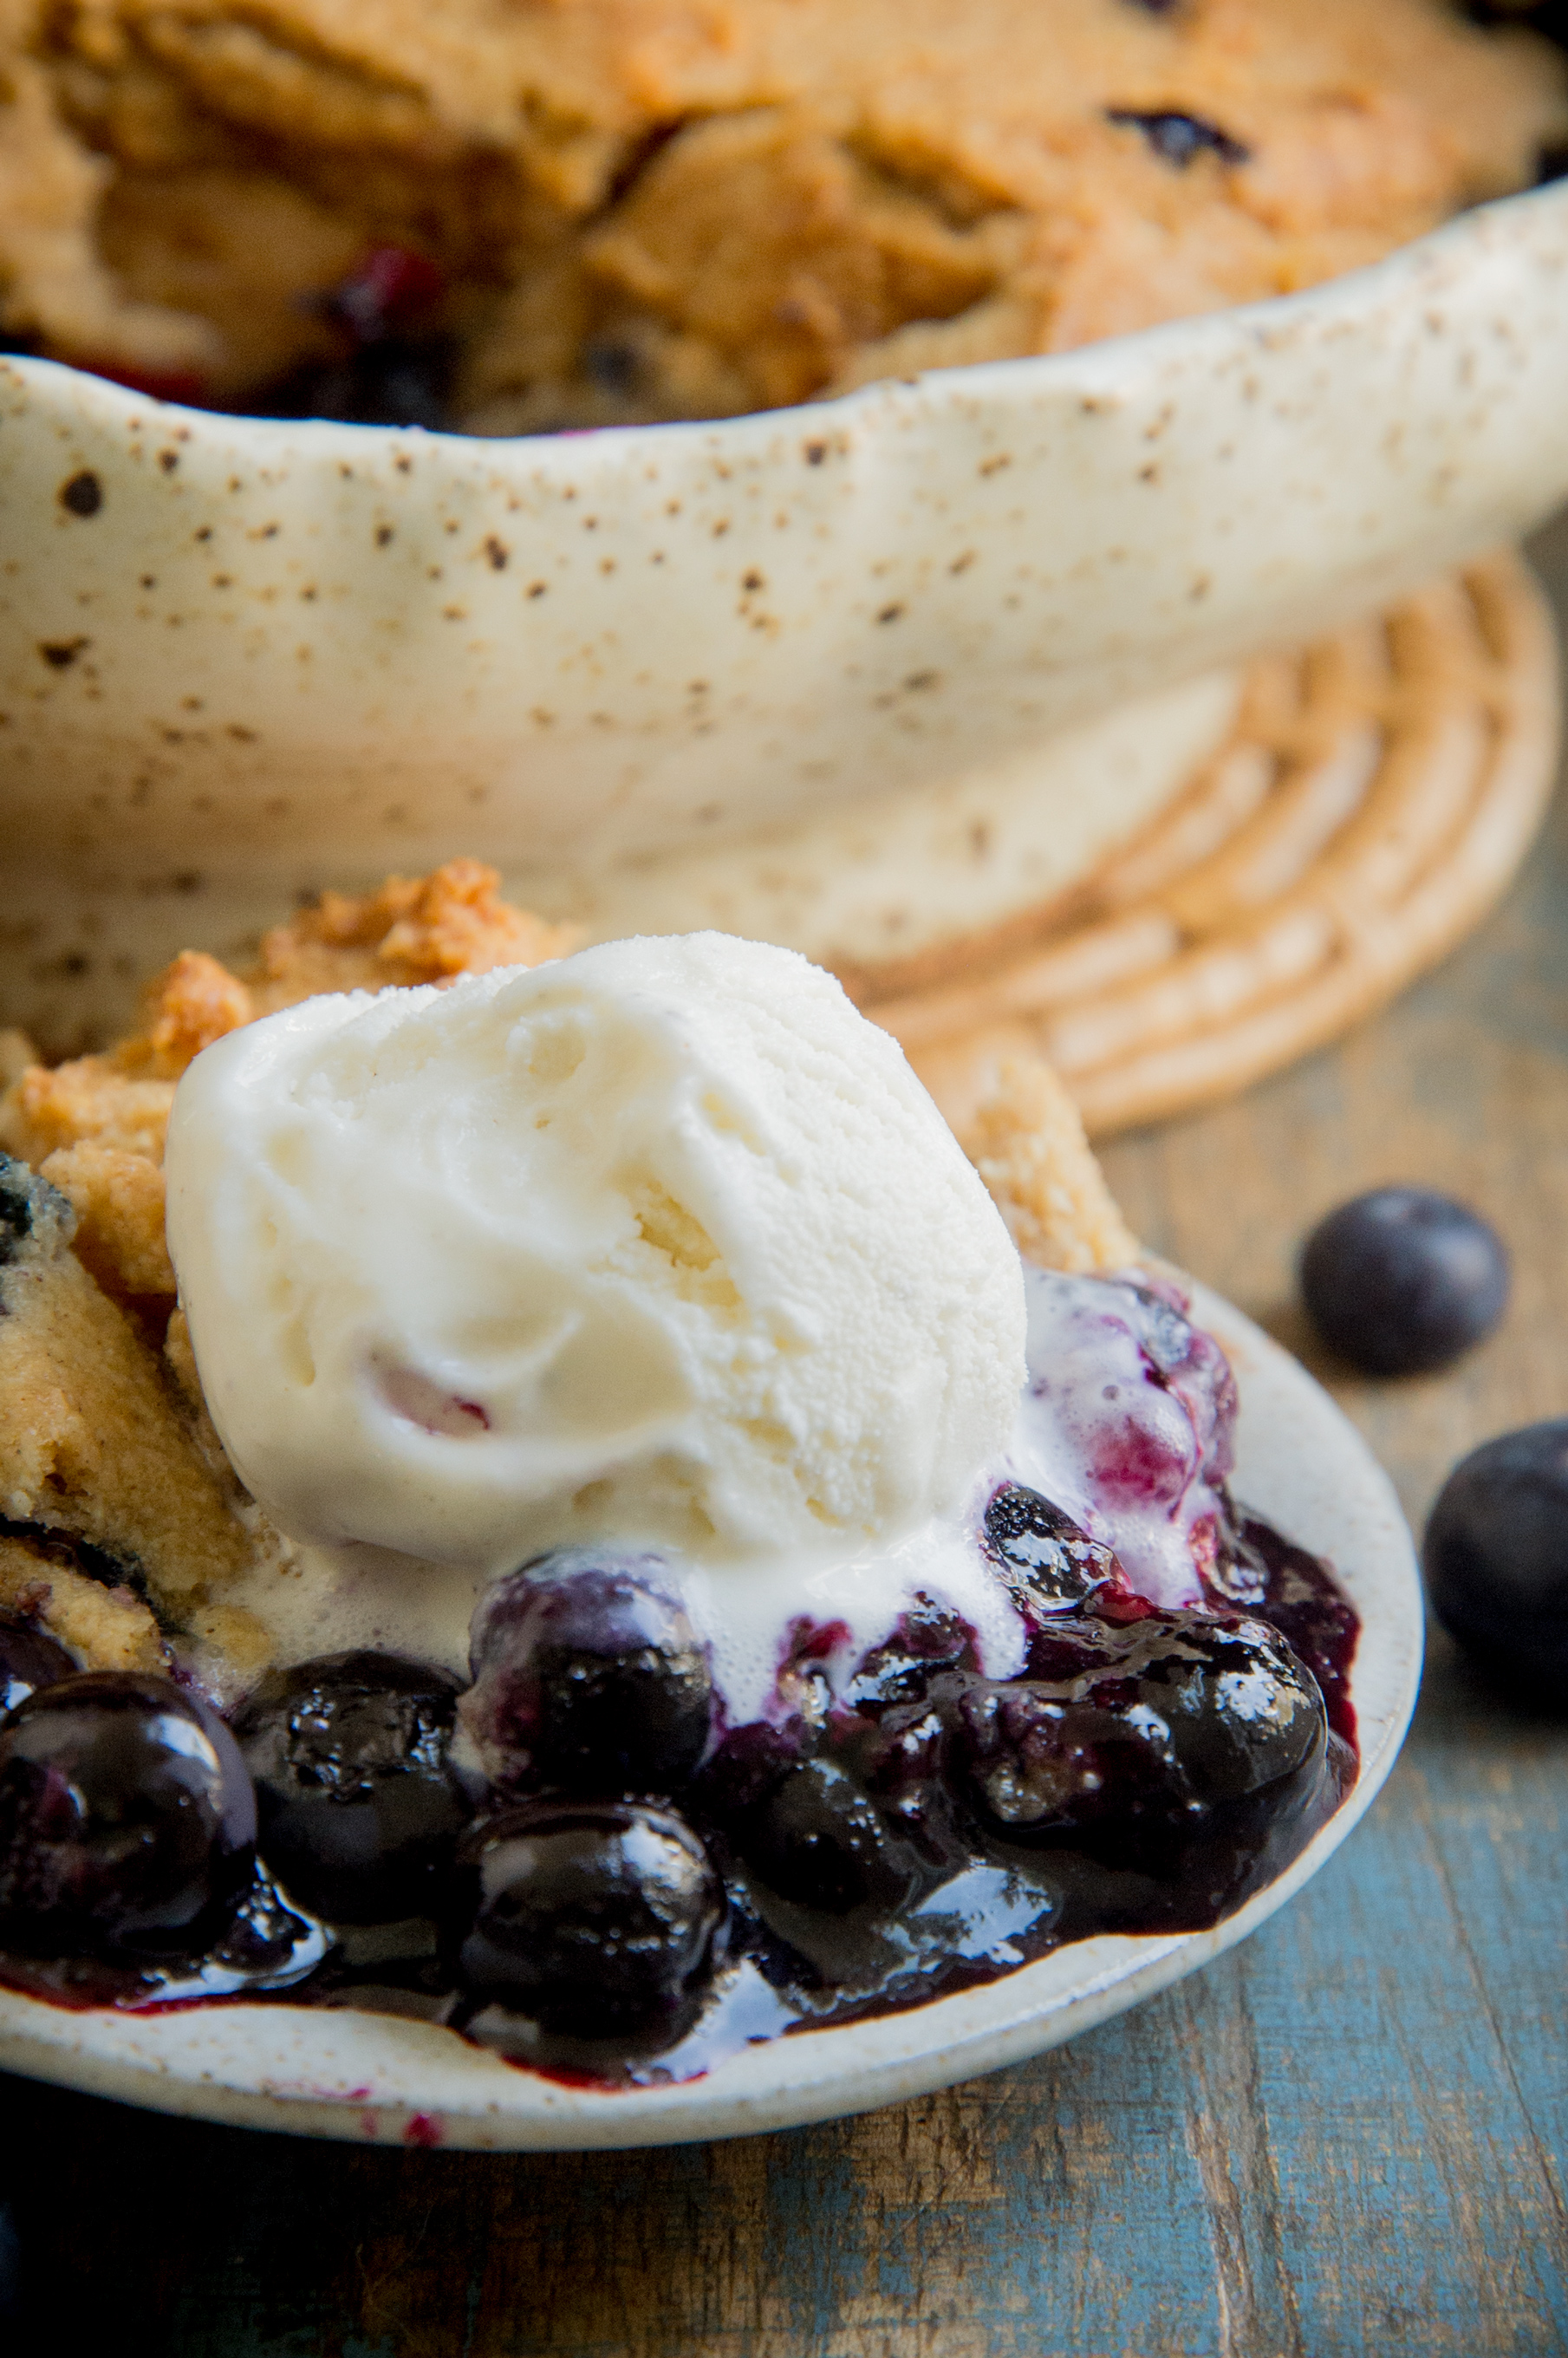 Low-Carb Keto-friendly Blueberry Cobbler with ice cream.